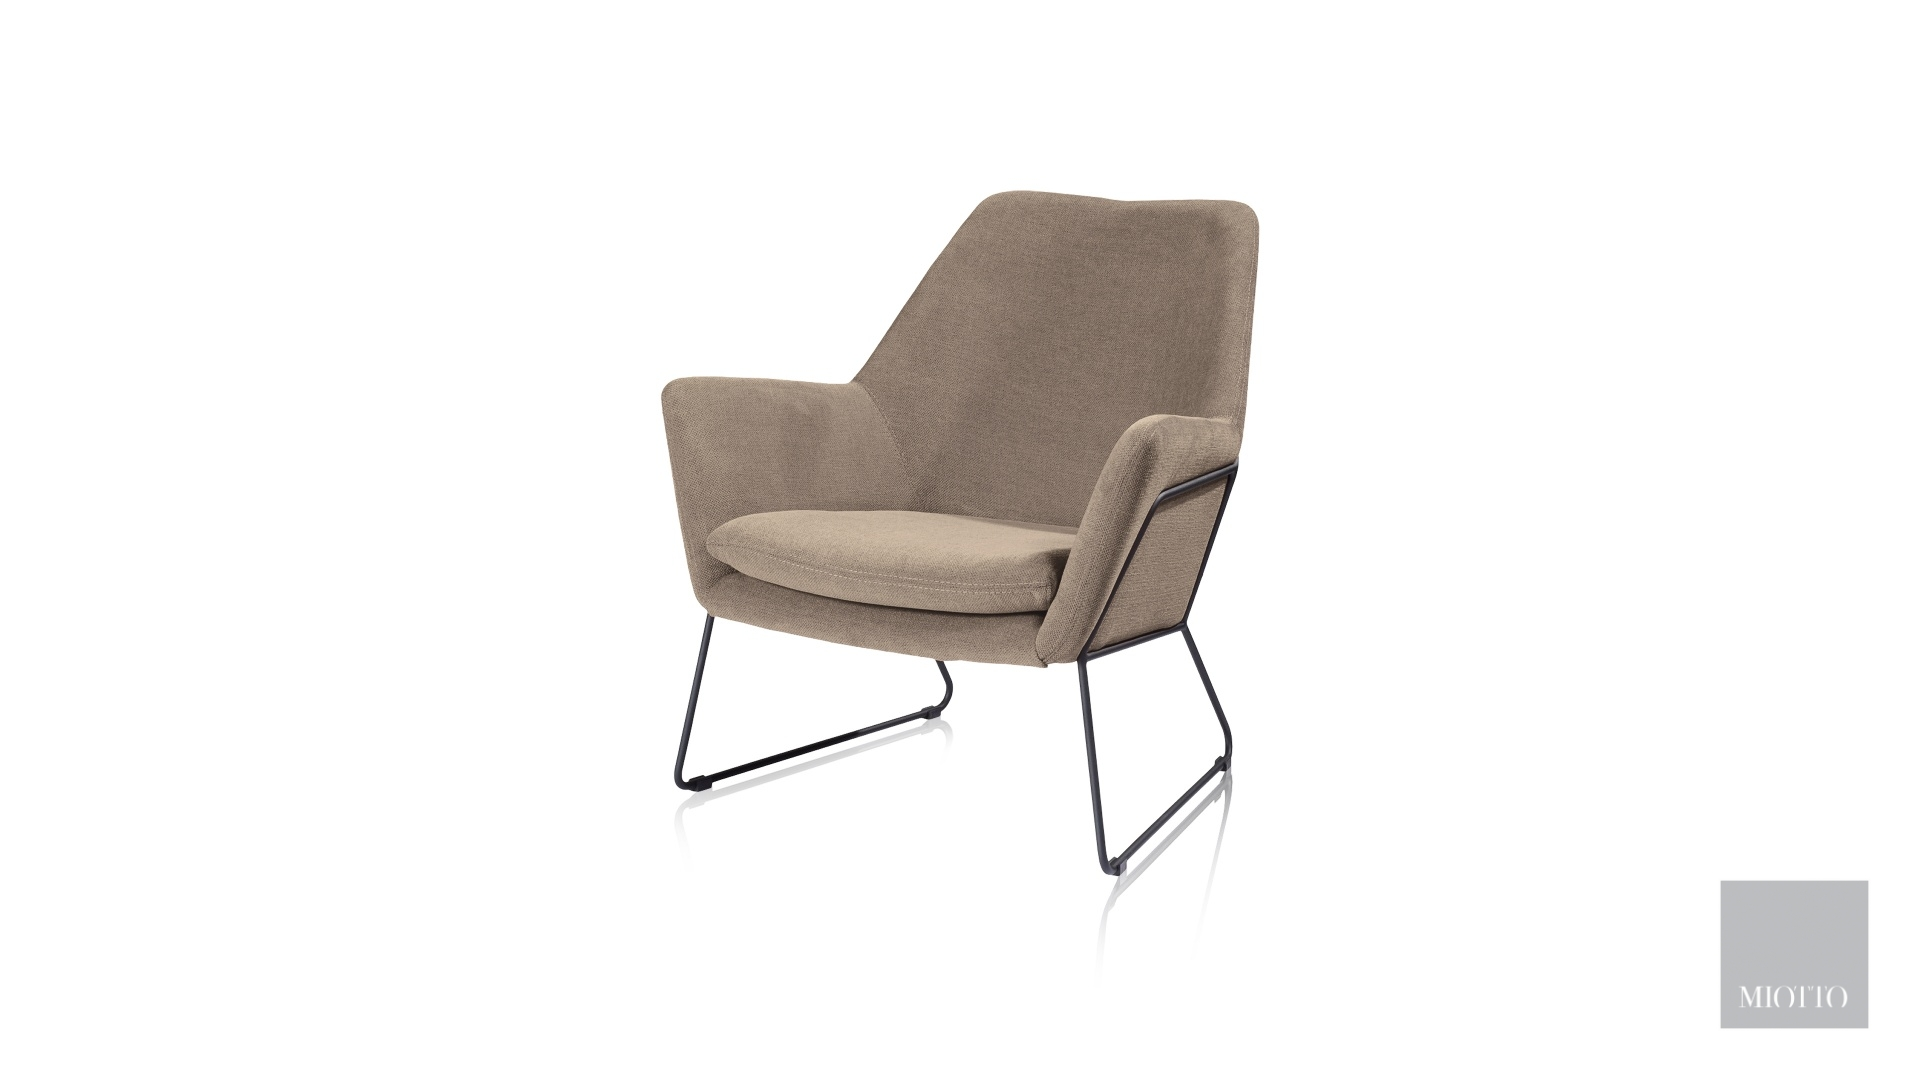 miotto_Duomo leisure chair taupe